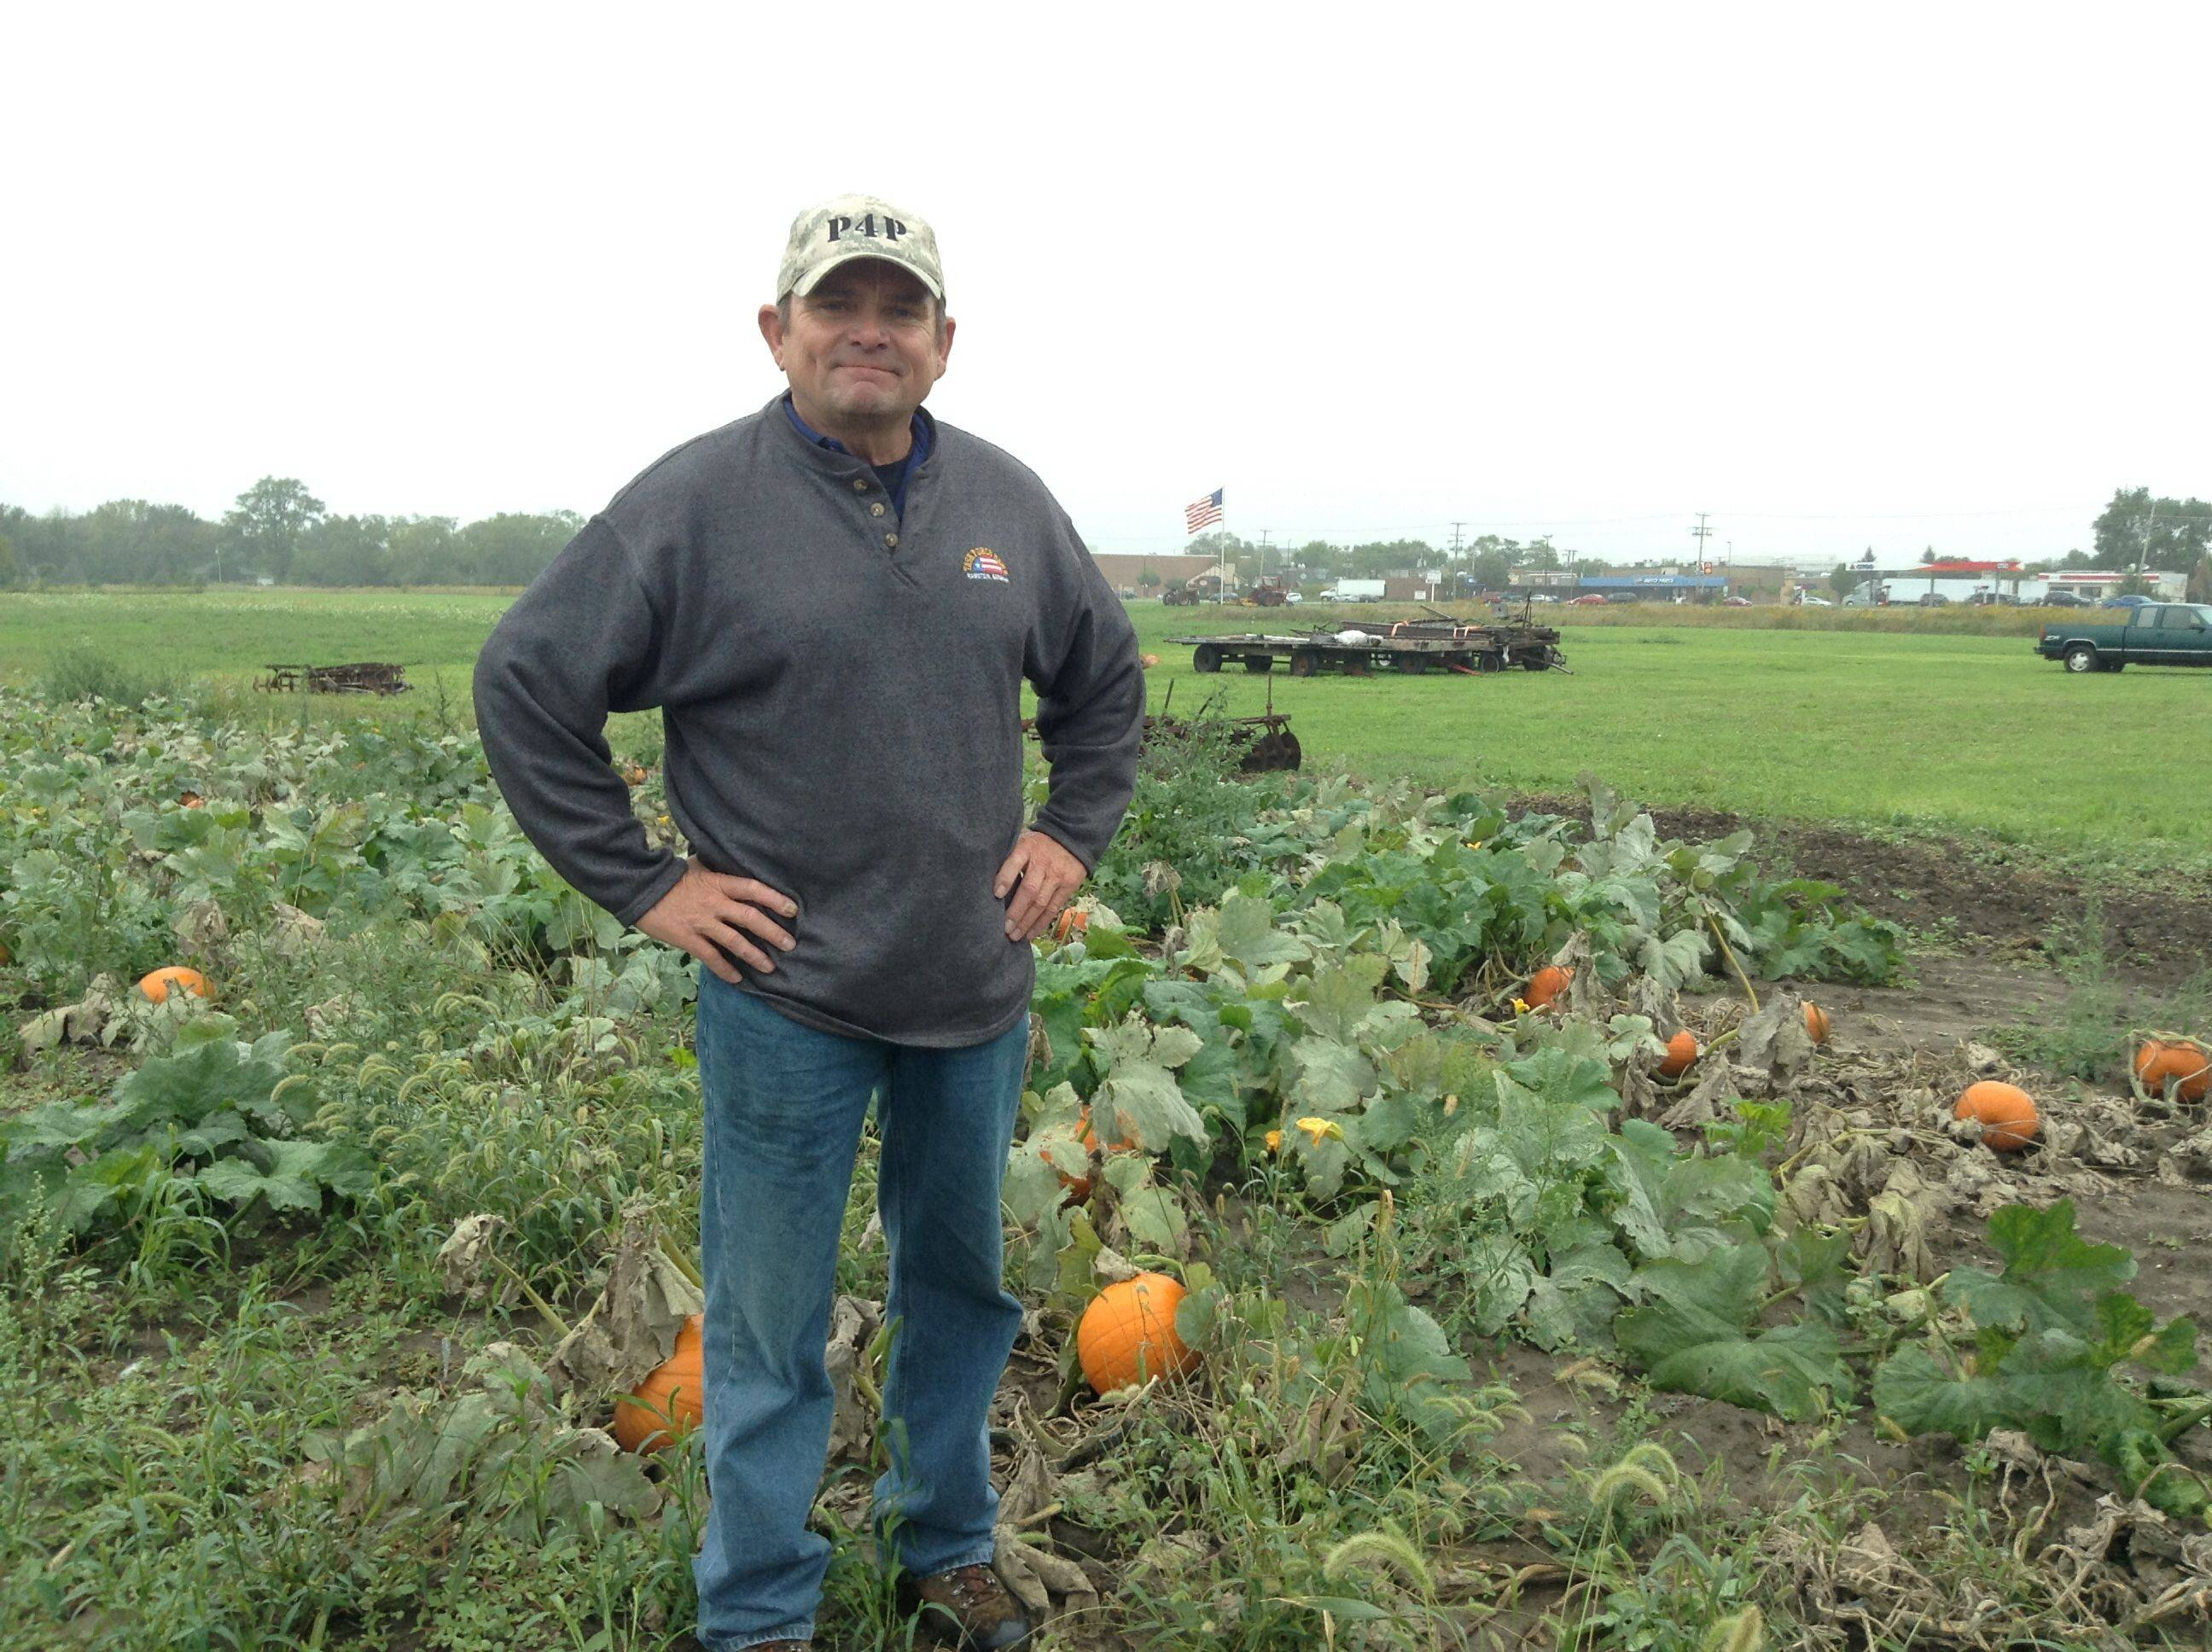 With a newly erected U.S. flag flying behind him, Pizza 4 Patriots founder Mark Evans stands in the pumpkin patch on the farm of Tim Busse in Elk Grove Village. Their Pumpkins 4 Patriots project gives pumpkins to veteran agencies and other charities.